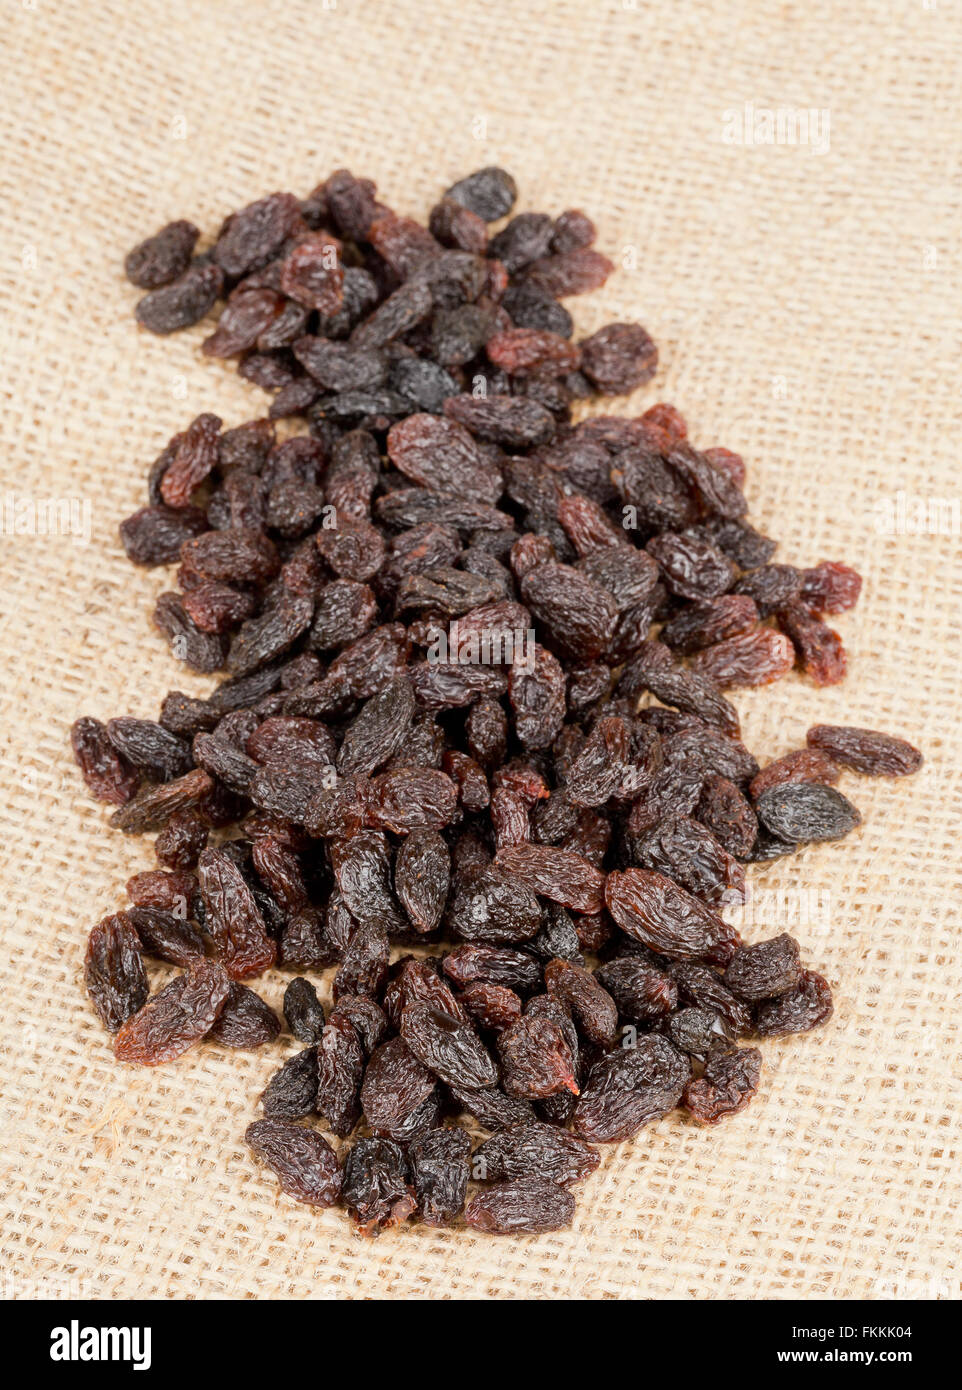 Heap of raisins close up on brown burlap sack - Stock Image